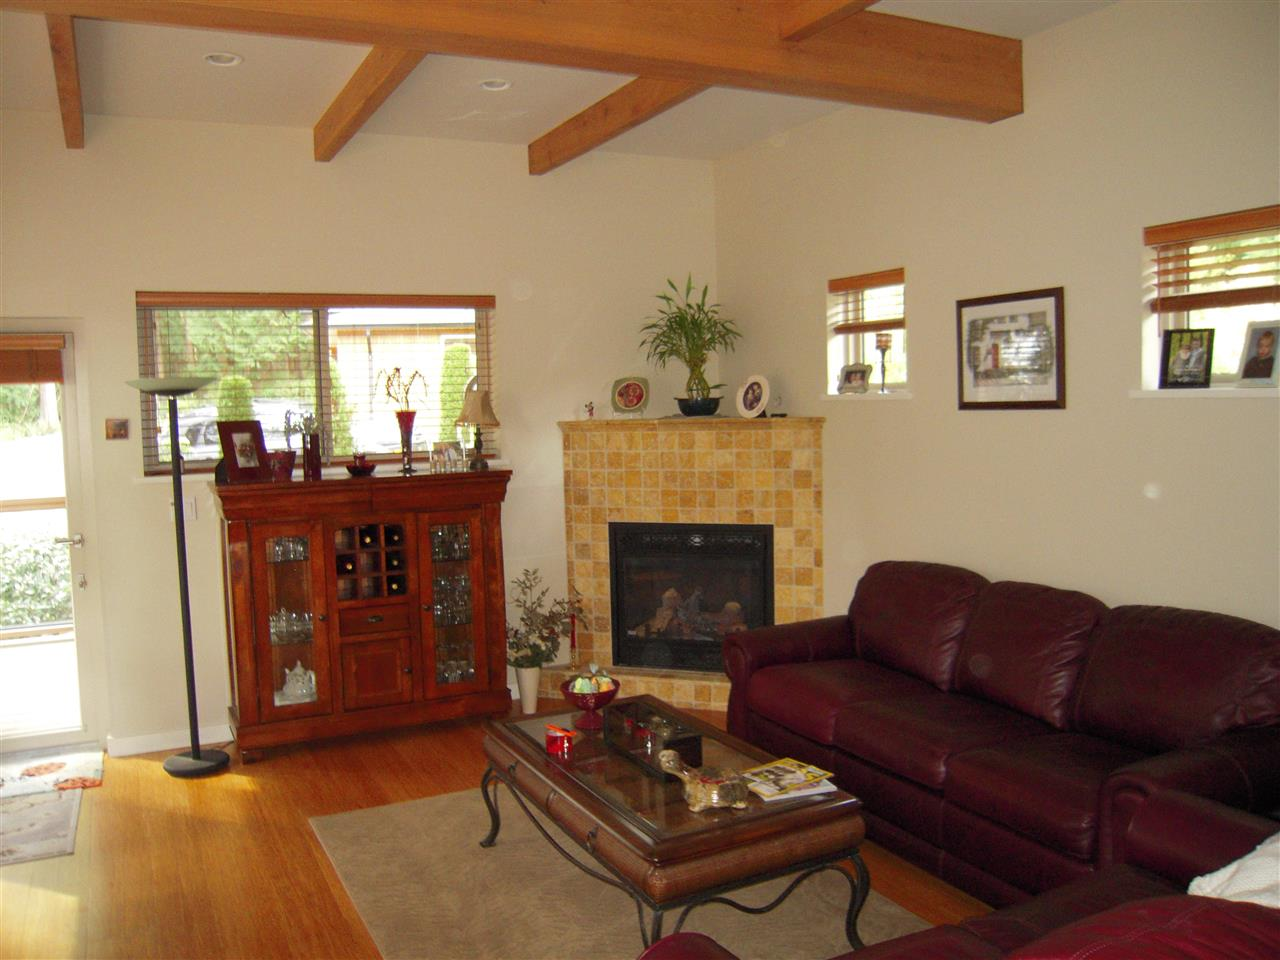 Photo 3: Photos: 5447 WAKEFIELD Road in Sechelt: Sechelt District House for sale (Sunshine Coast)  : MLS® # R2047962